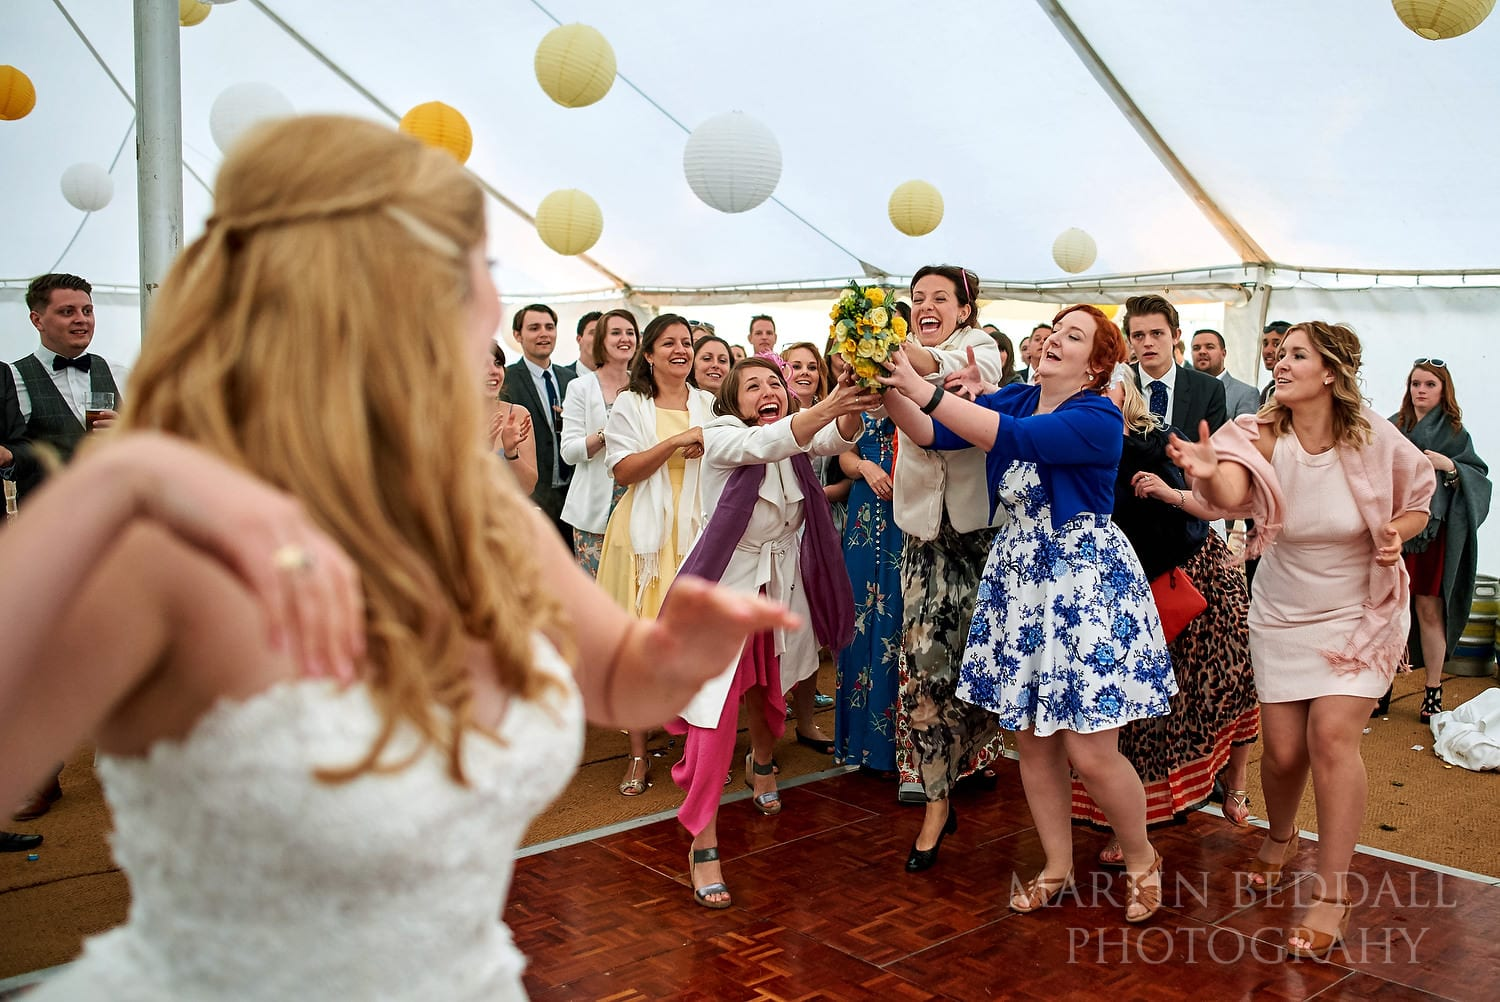 Catching the bride's bouquet at Hatch House wedding